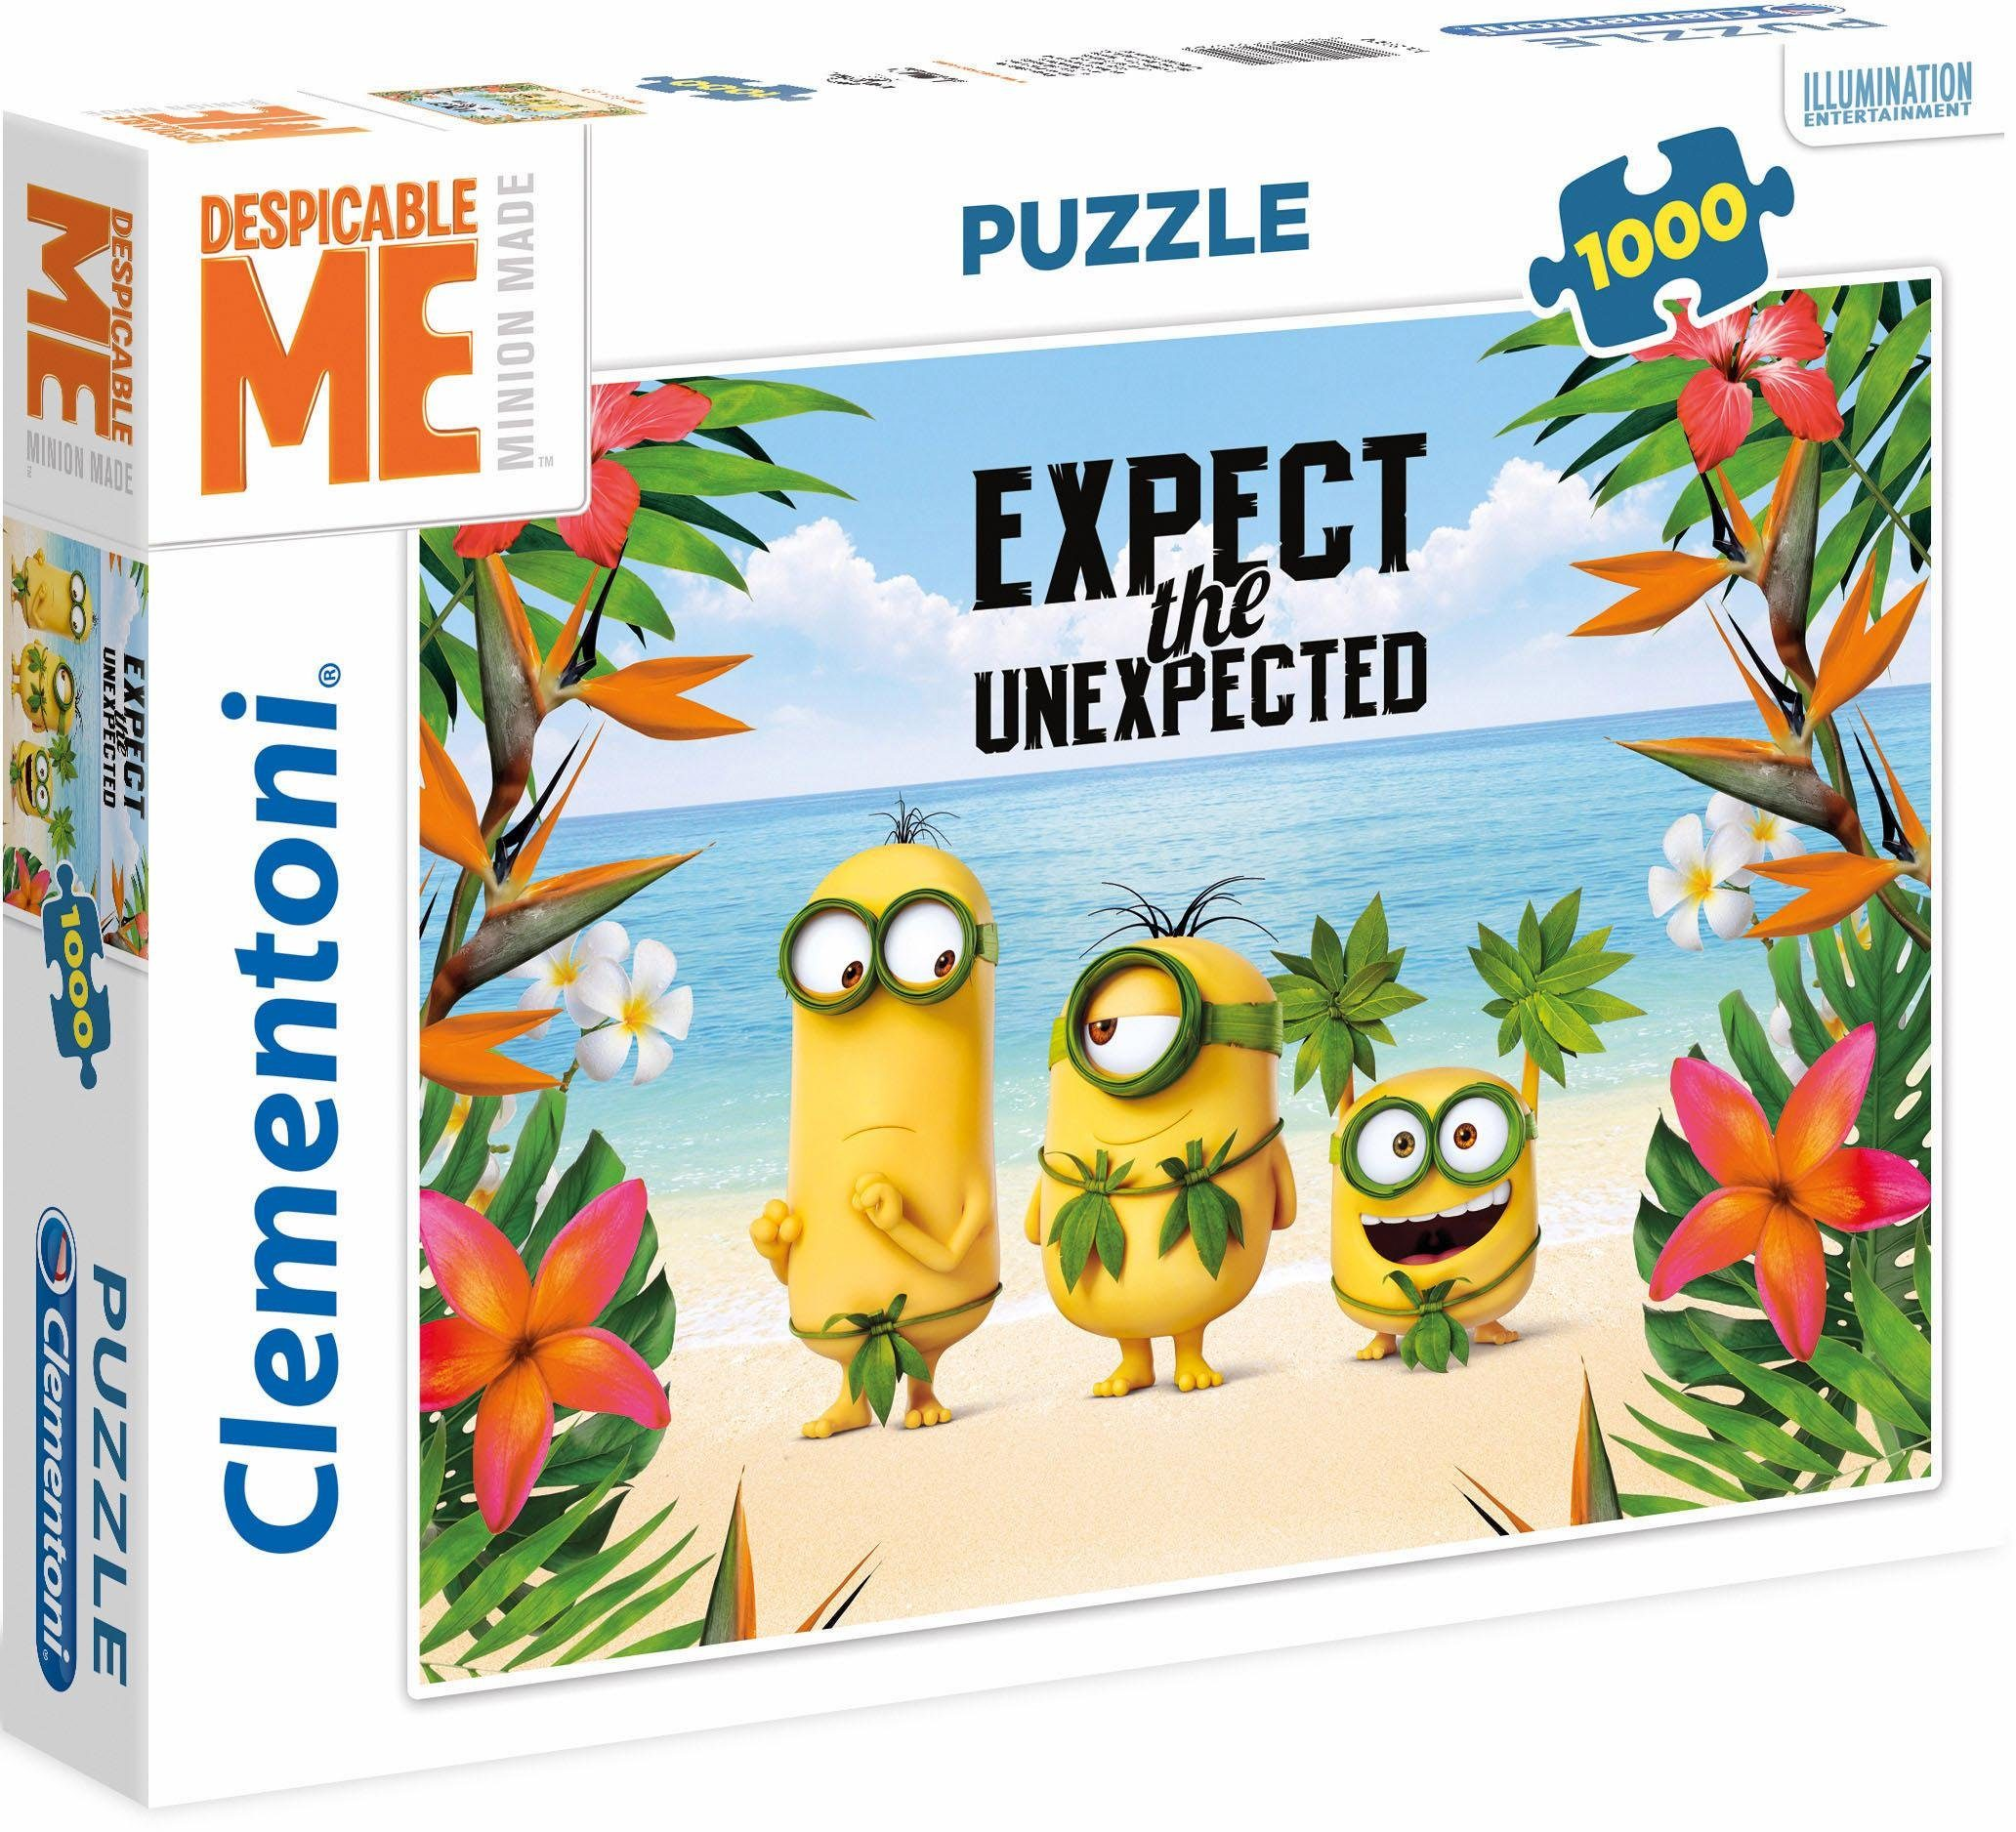 Clementoni Puzzle, 1000 Teile, »Despicable Me, Expect the unexpected«